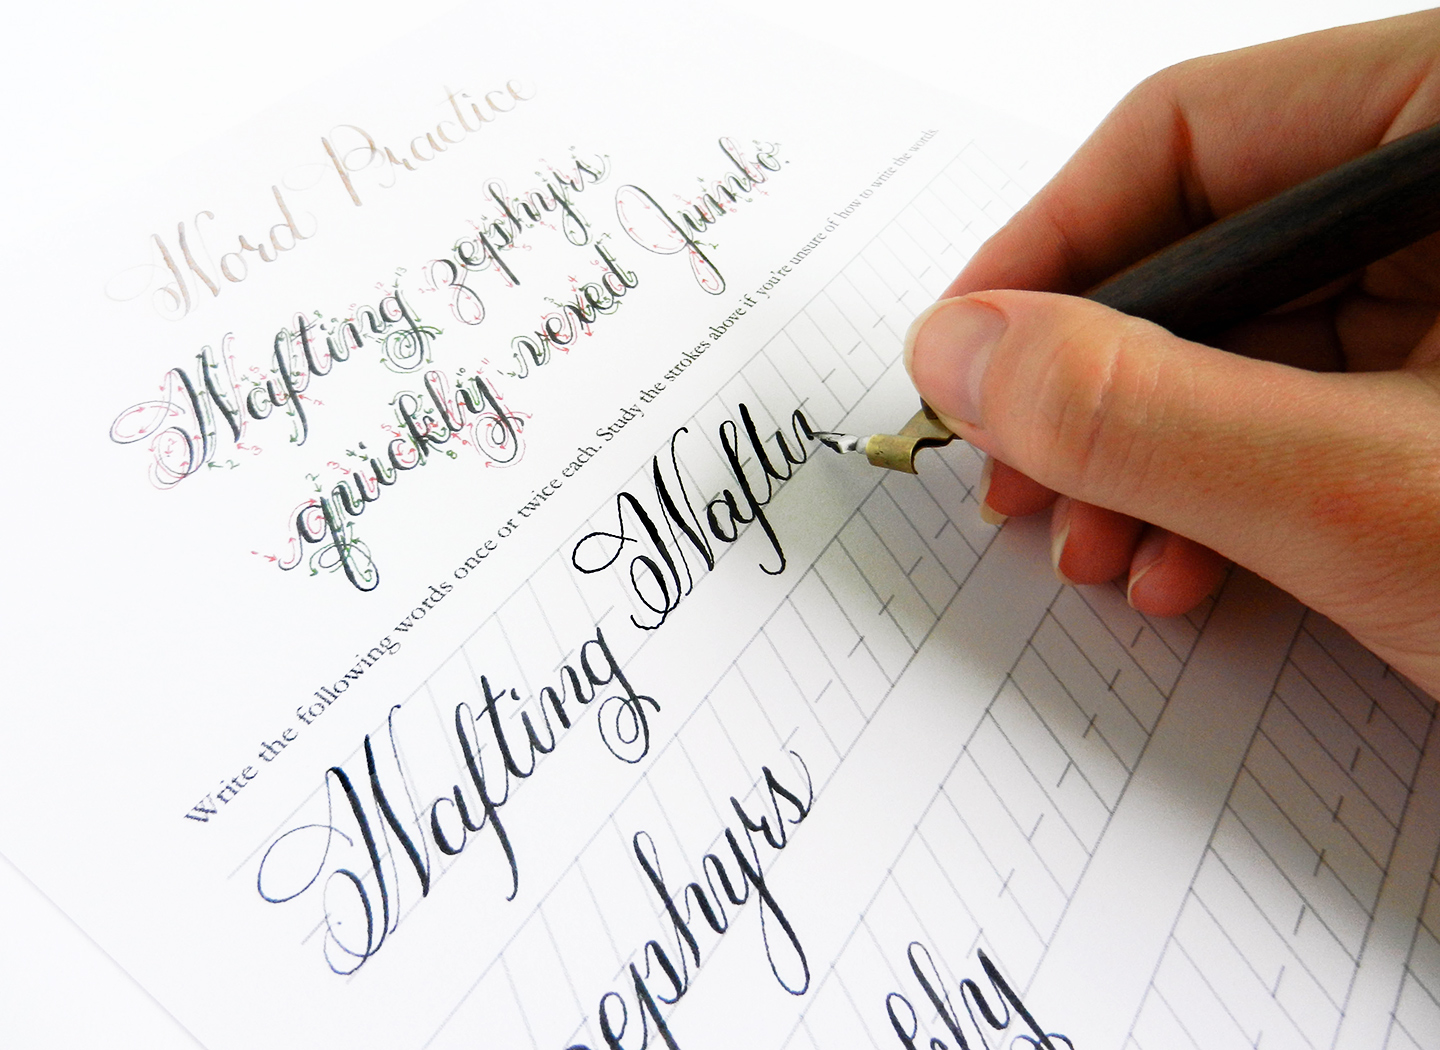 Working on the Janet Style Calligraphy Worksheet | The Postman's Knock